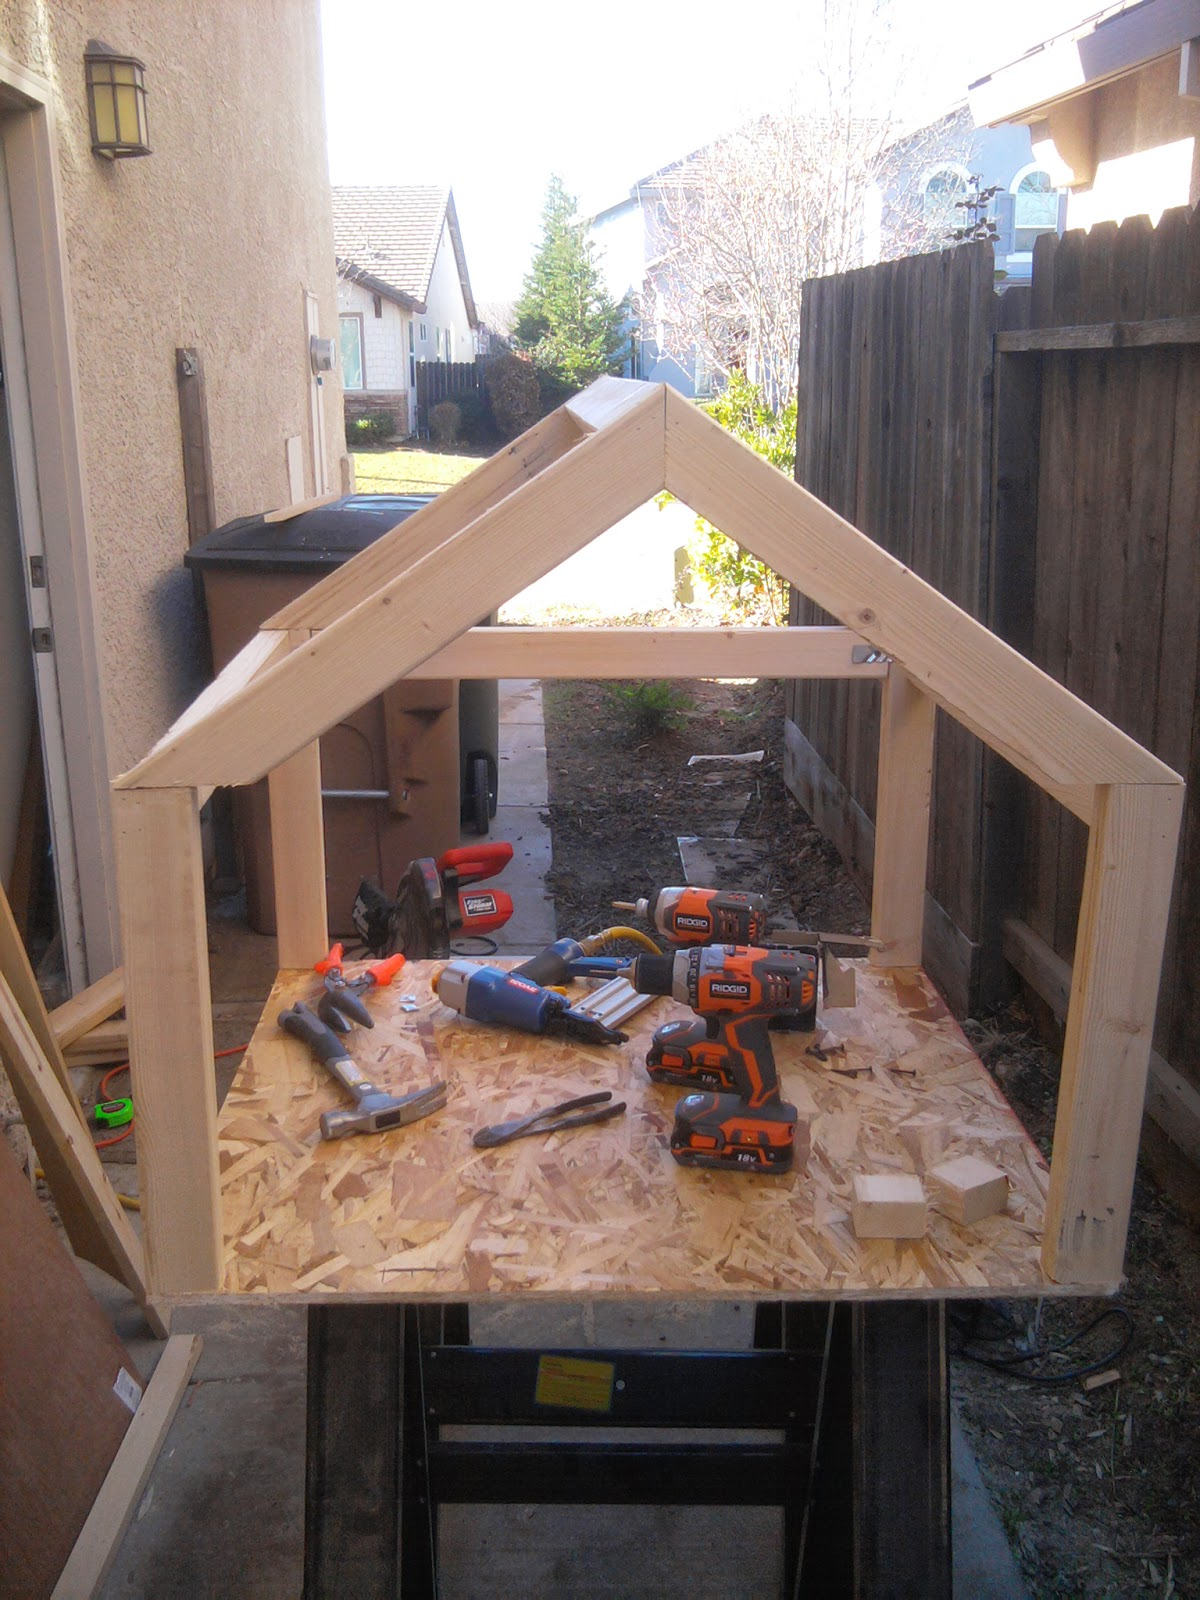 Roscoes Story In The Dog House - Dog-house-frame